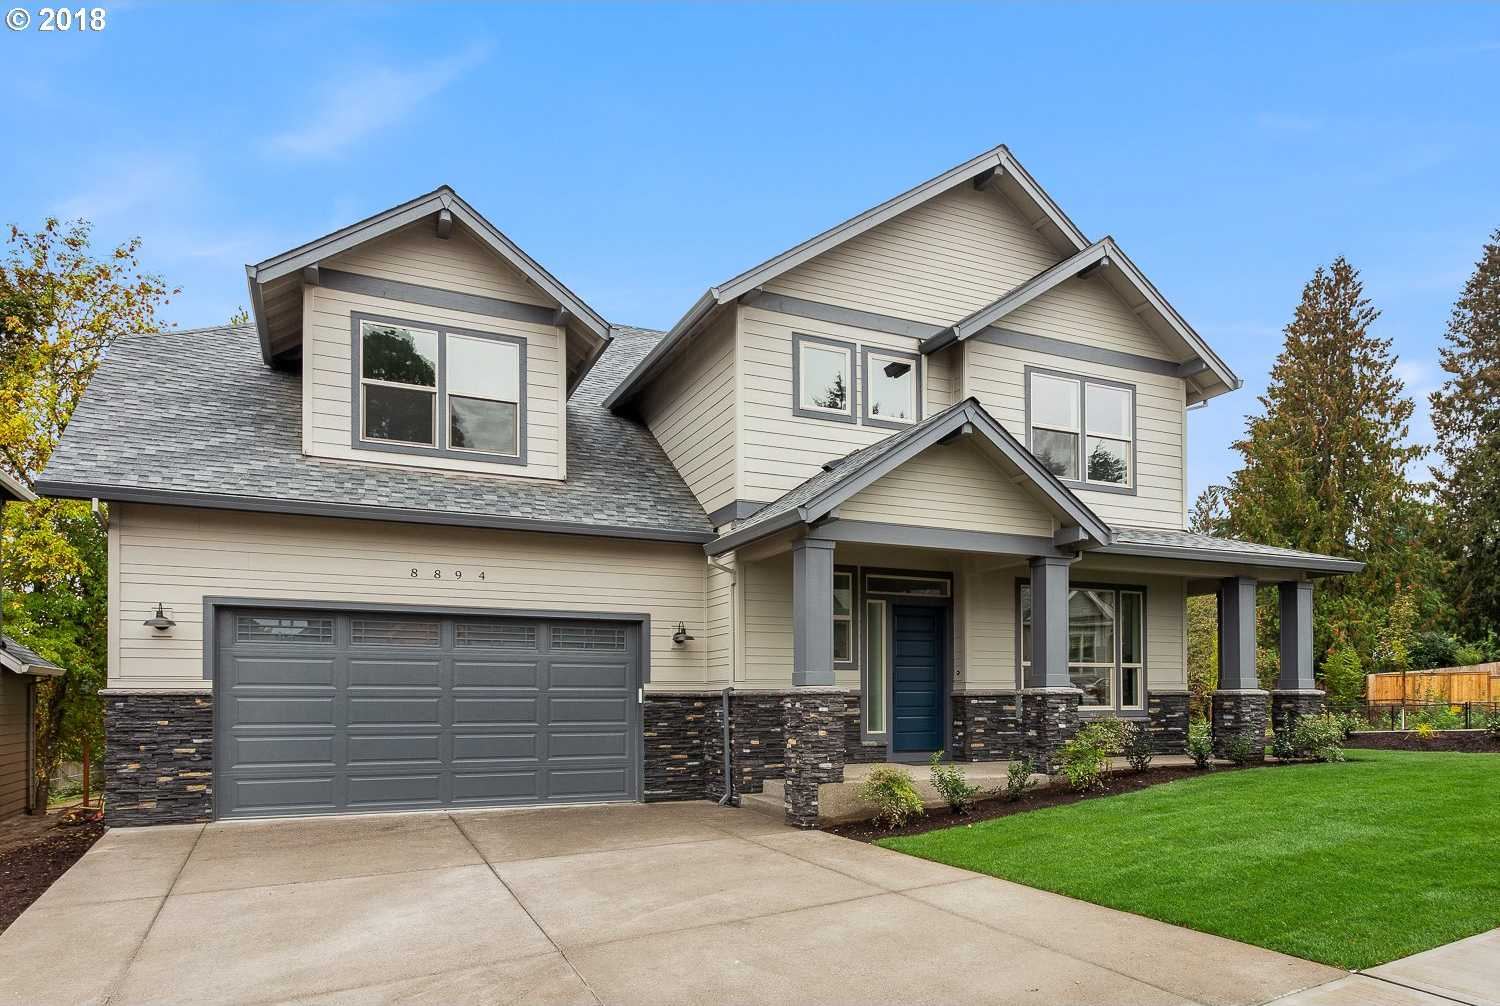 $775,000 - 4Br/3Ba -  for Sale in Tigard